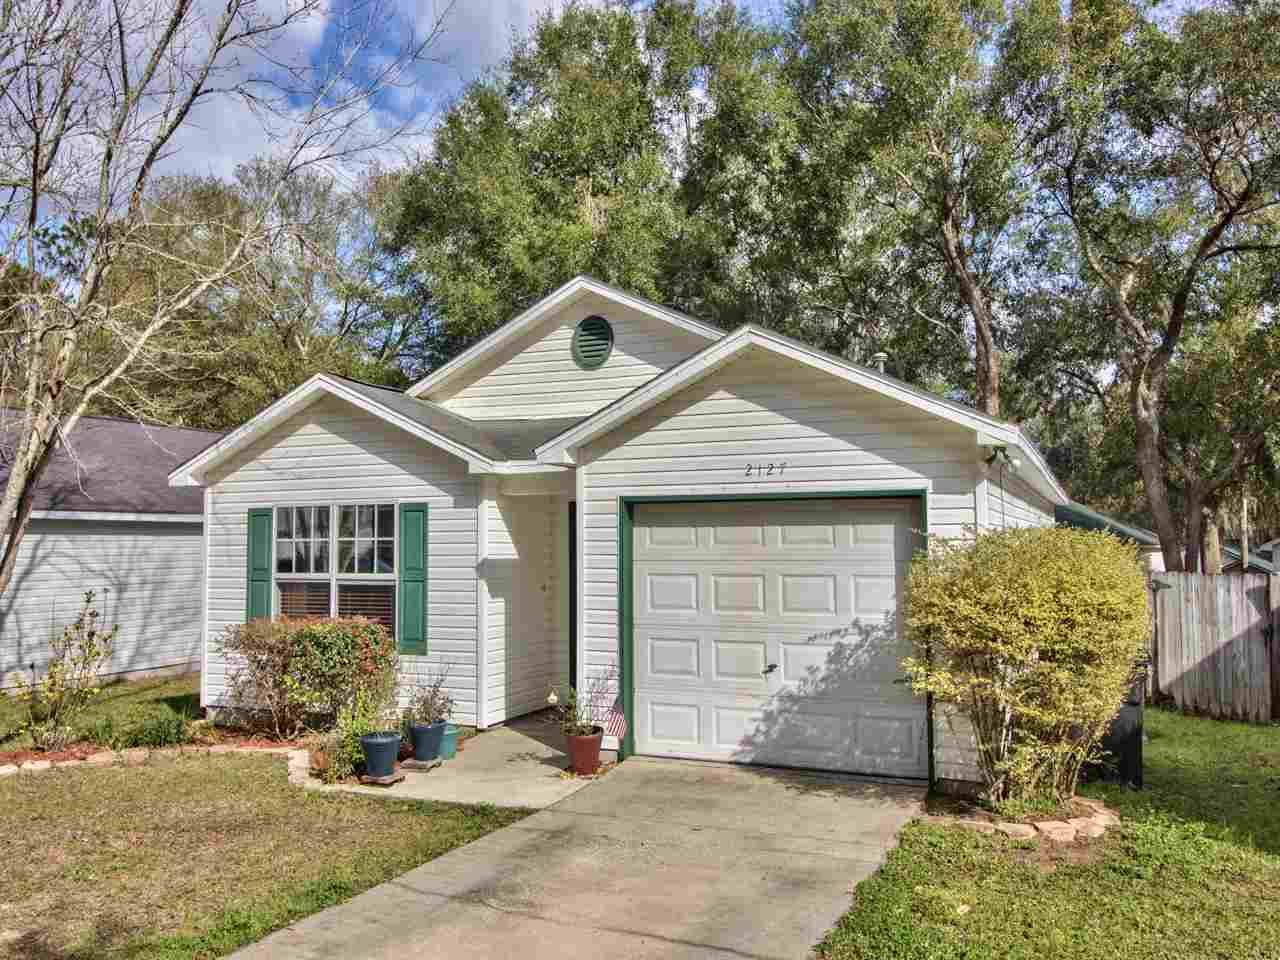 Photo of 2127 Wesley Court, TALLAHASSEE, FL 32303 (MLS # 315117)